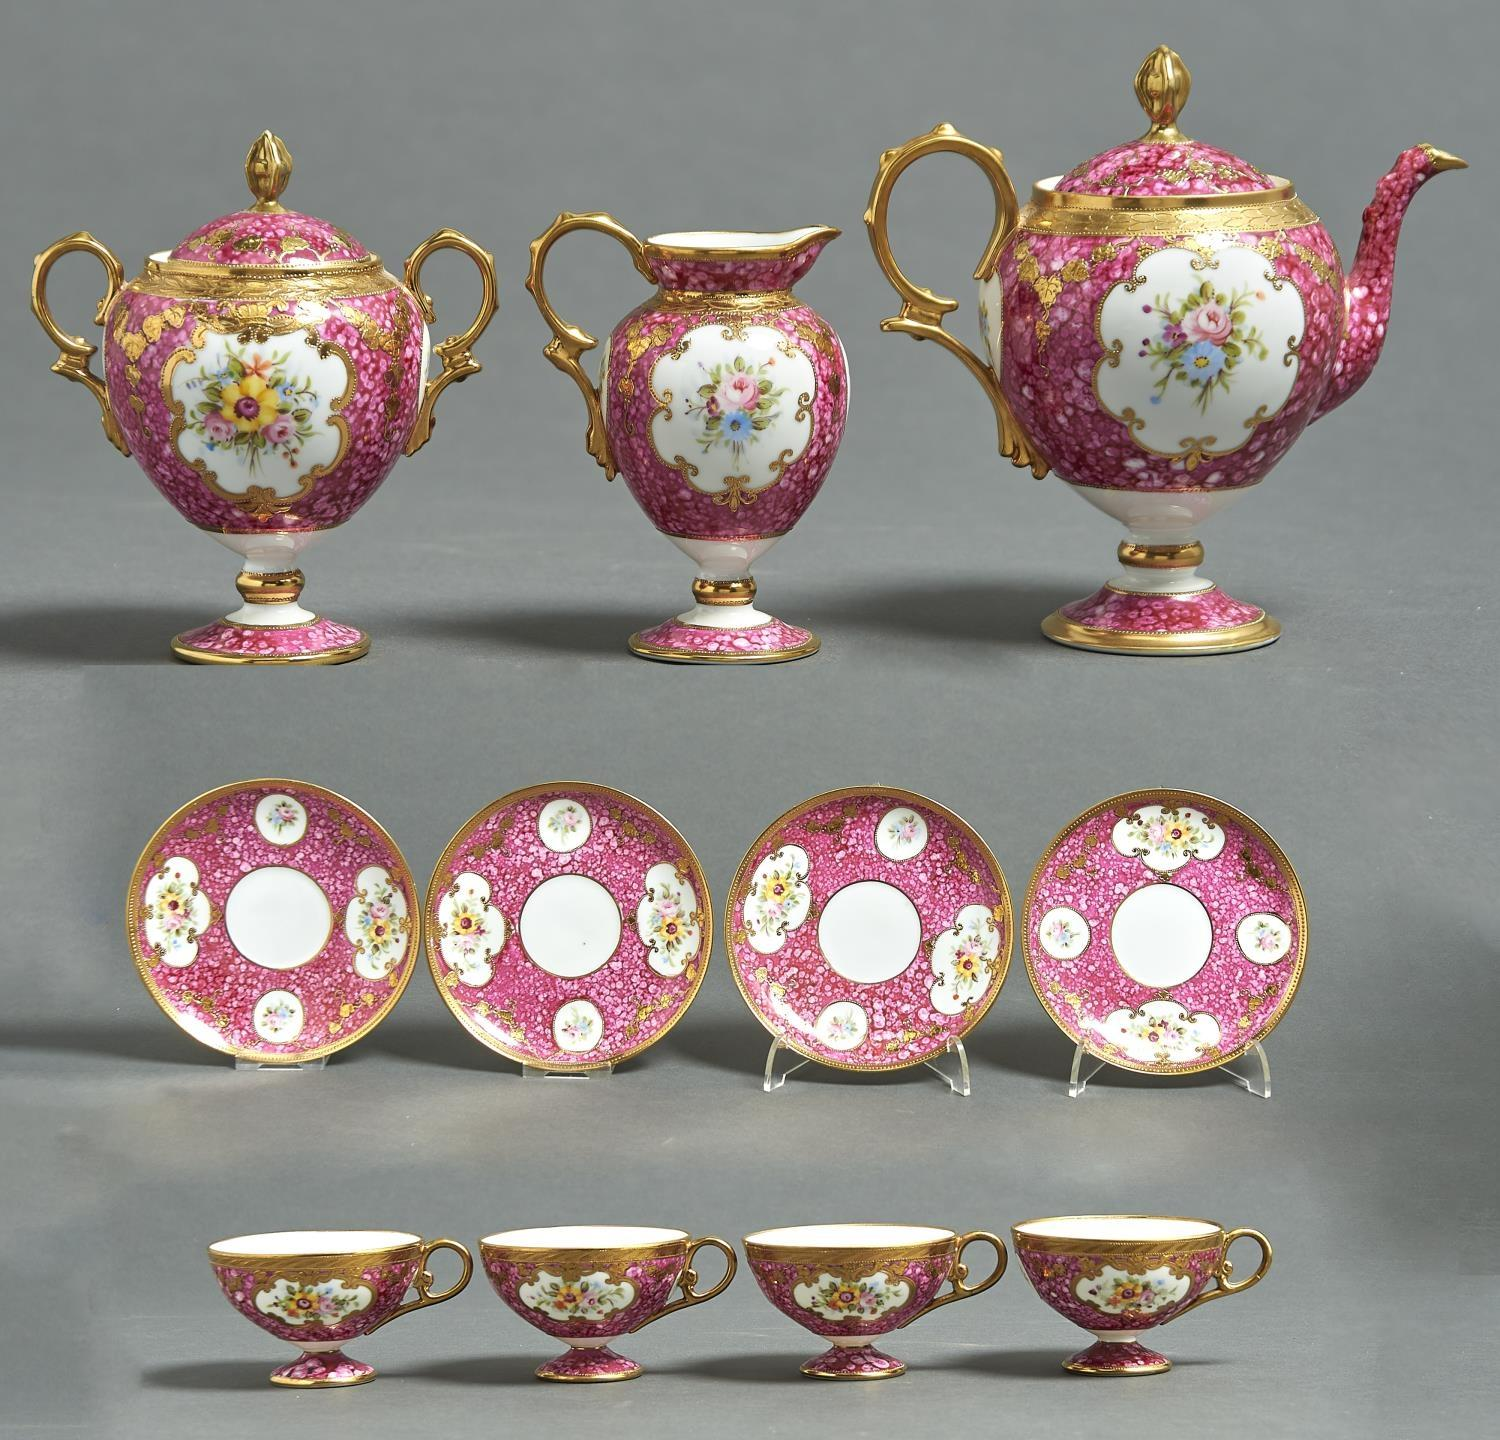 A NORITAKE TEA SERVICE, EARLY 20TH C, OF VASE SHAPE PAINTED WITH FLOWERS IN RAISED GILT RESERVES